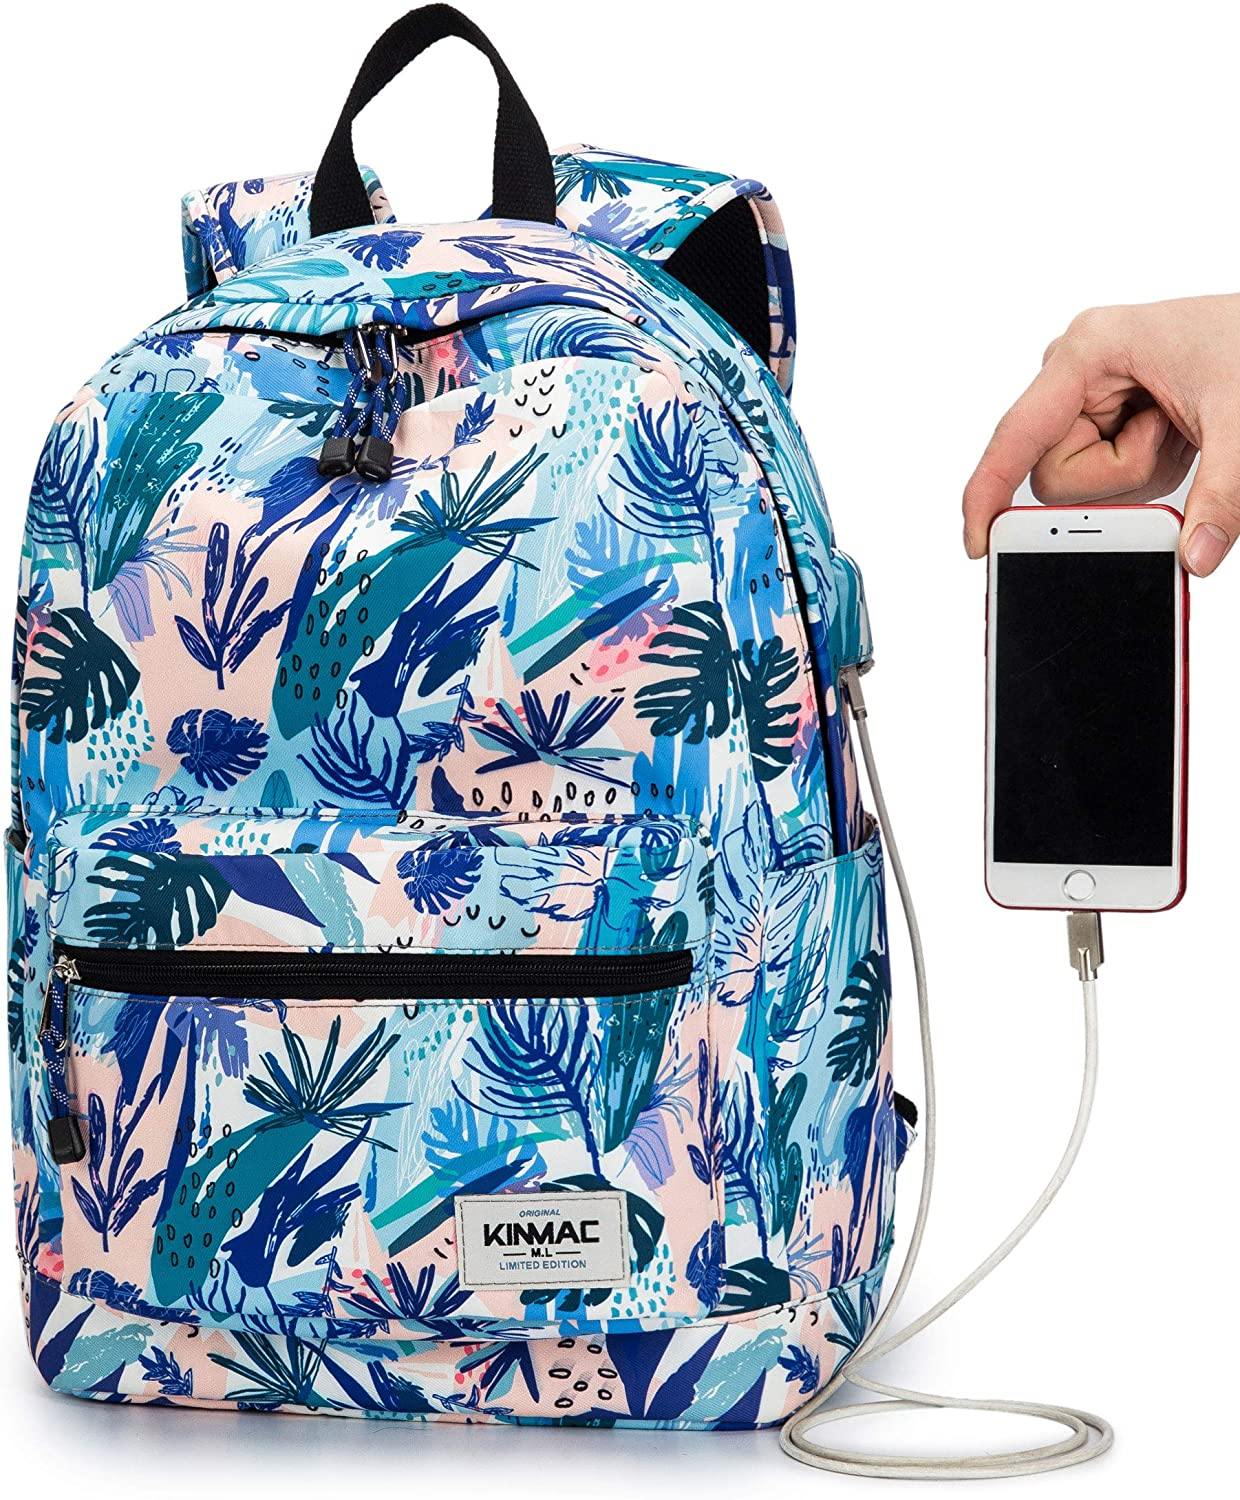 Kinmac Sea Grass Pattern 15 inch Waterproof Laptop Travel Outdoor Backpack with USB Charging Port for 13 inch 14 inch and 15.6 inch Laptop